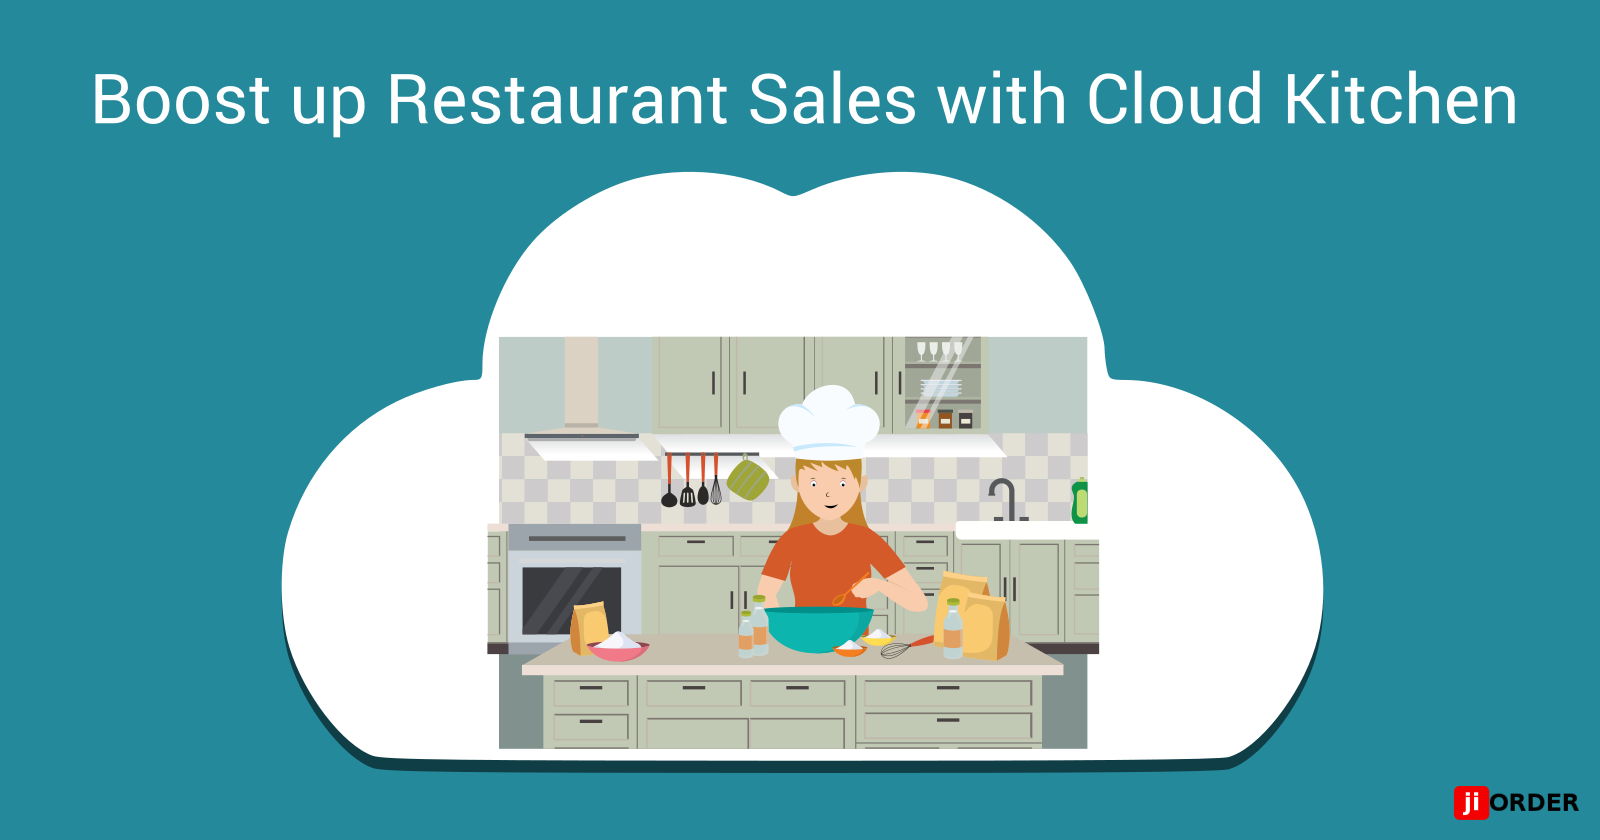 Cloud Kitchens: The Secret Recipe for your Restaurant's Success